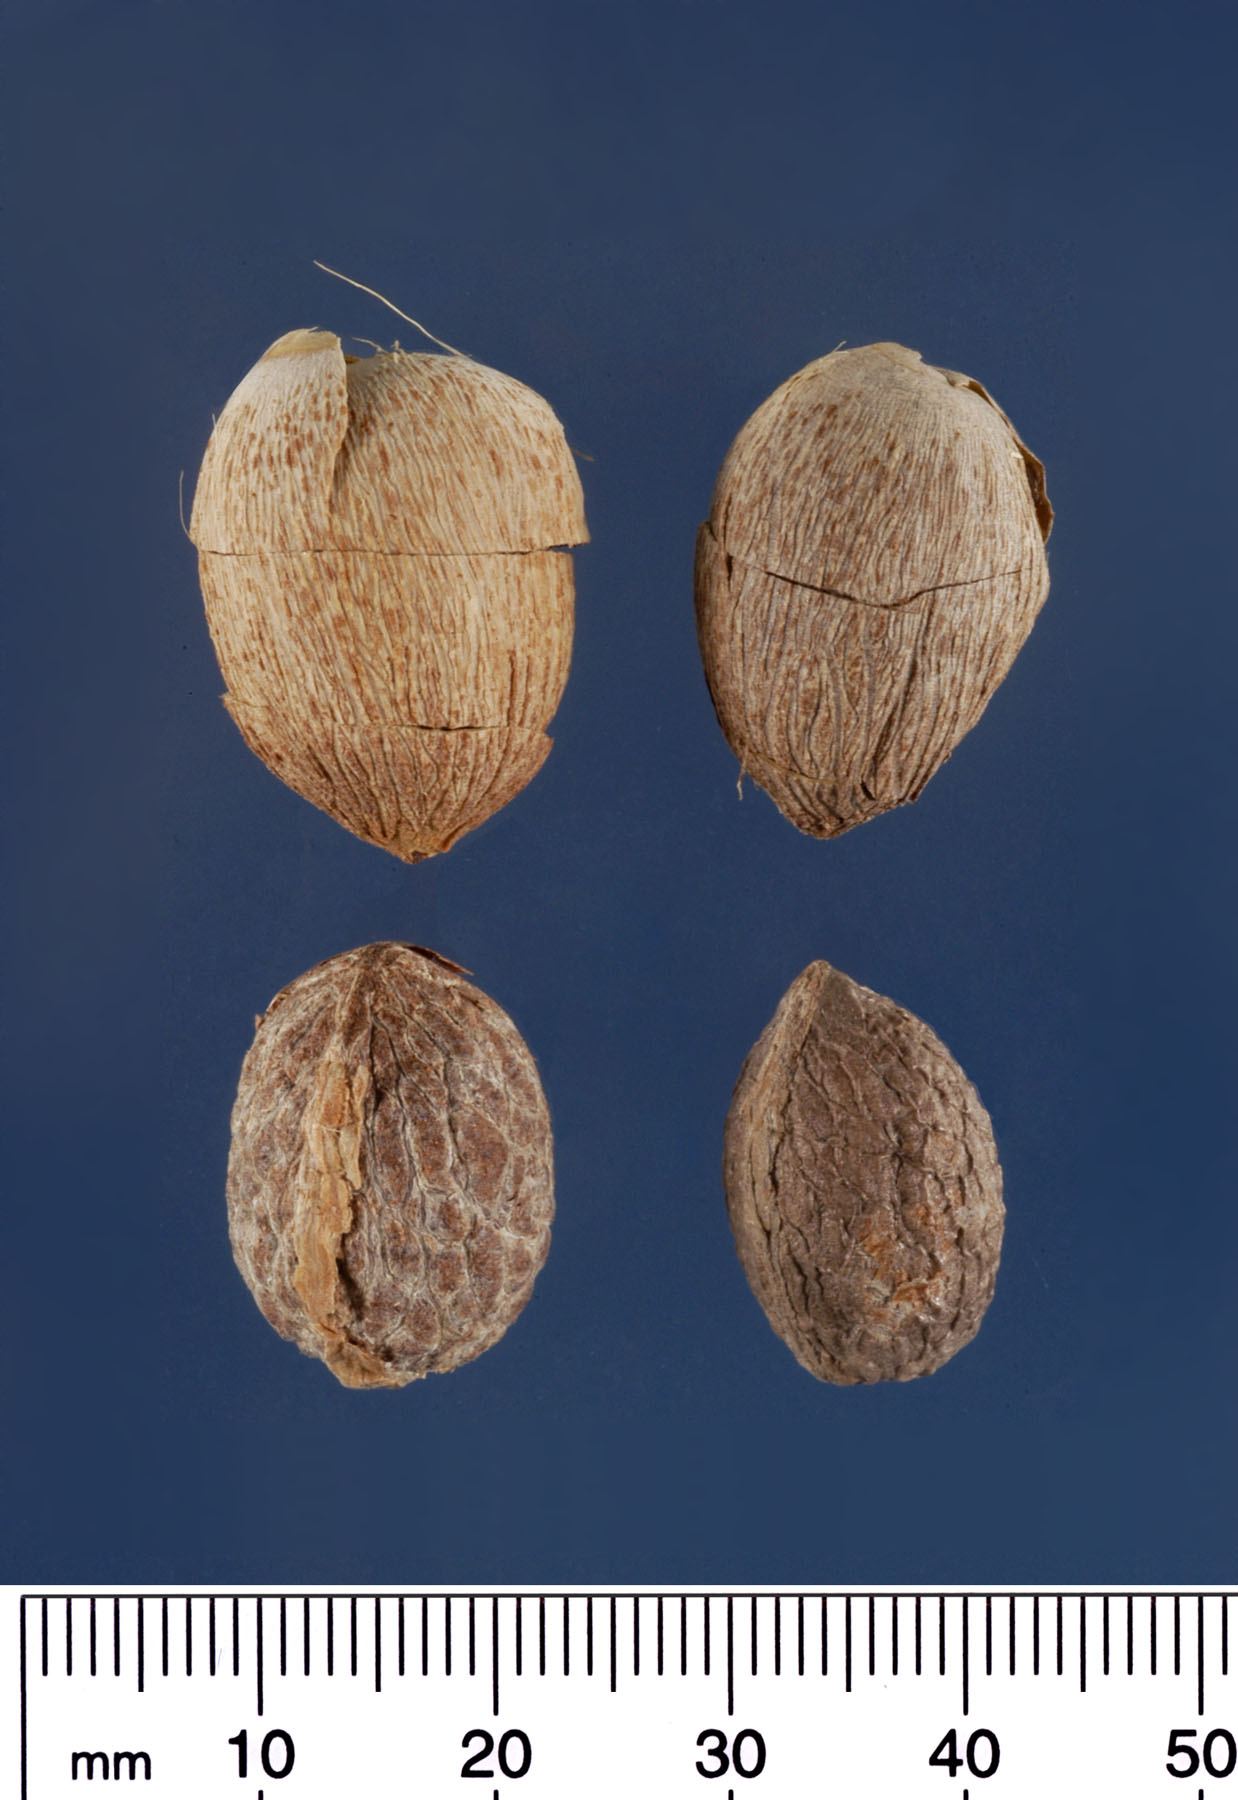 <p><em>Adonidia merrillii </em>seeds (mm scale). Photograph courtesy of Mariana P. Beckman, DPI</p>